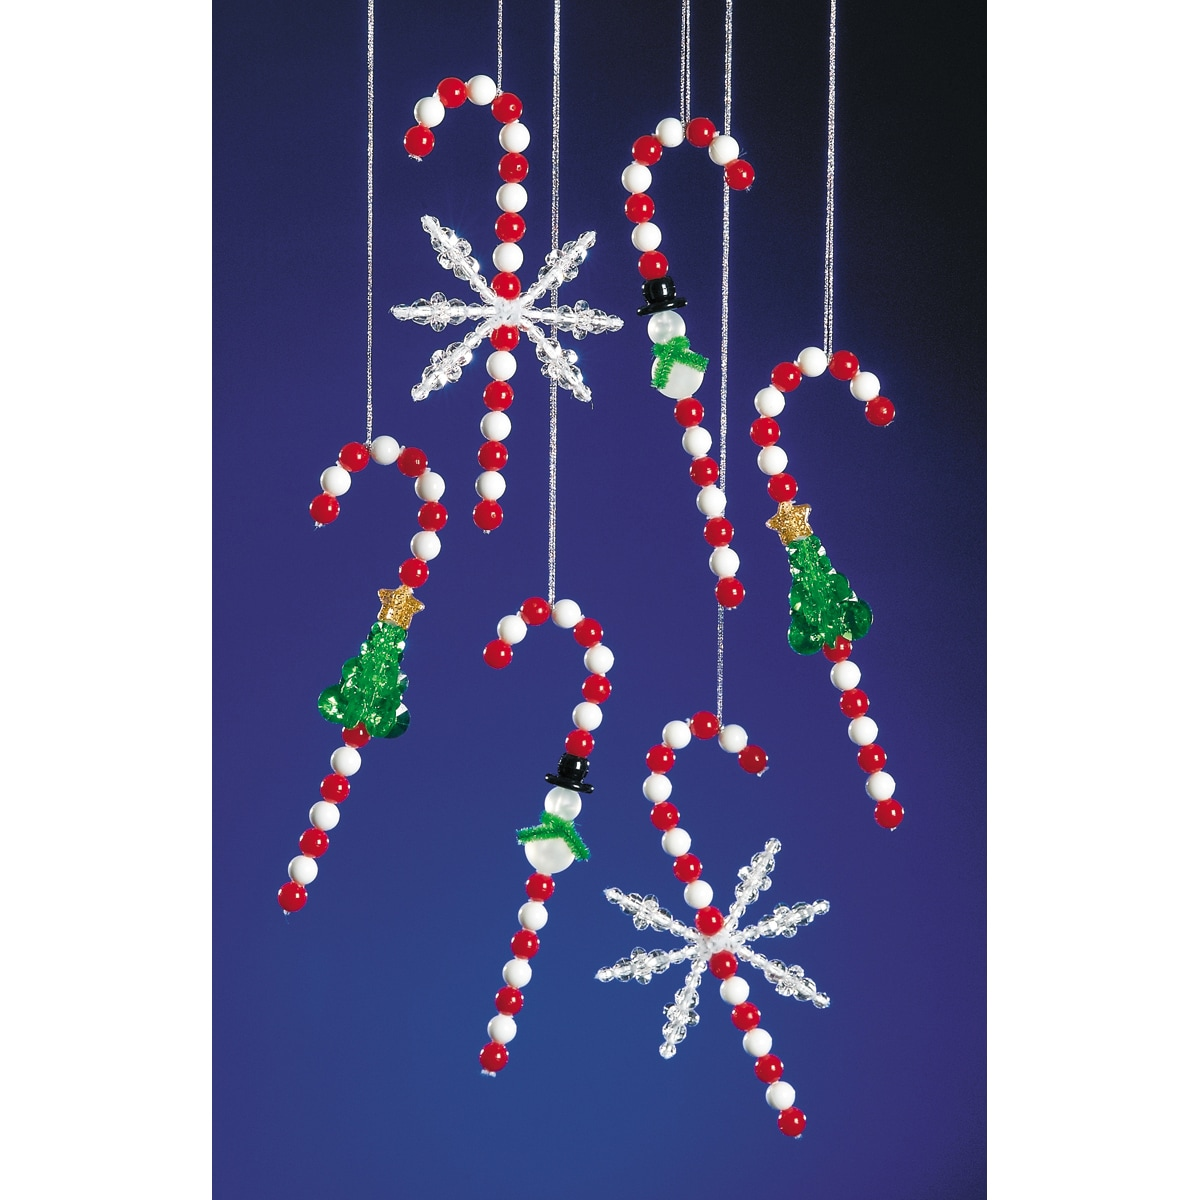 Festive Candy Canes Holiday Beaded Ornament Kit